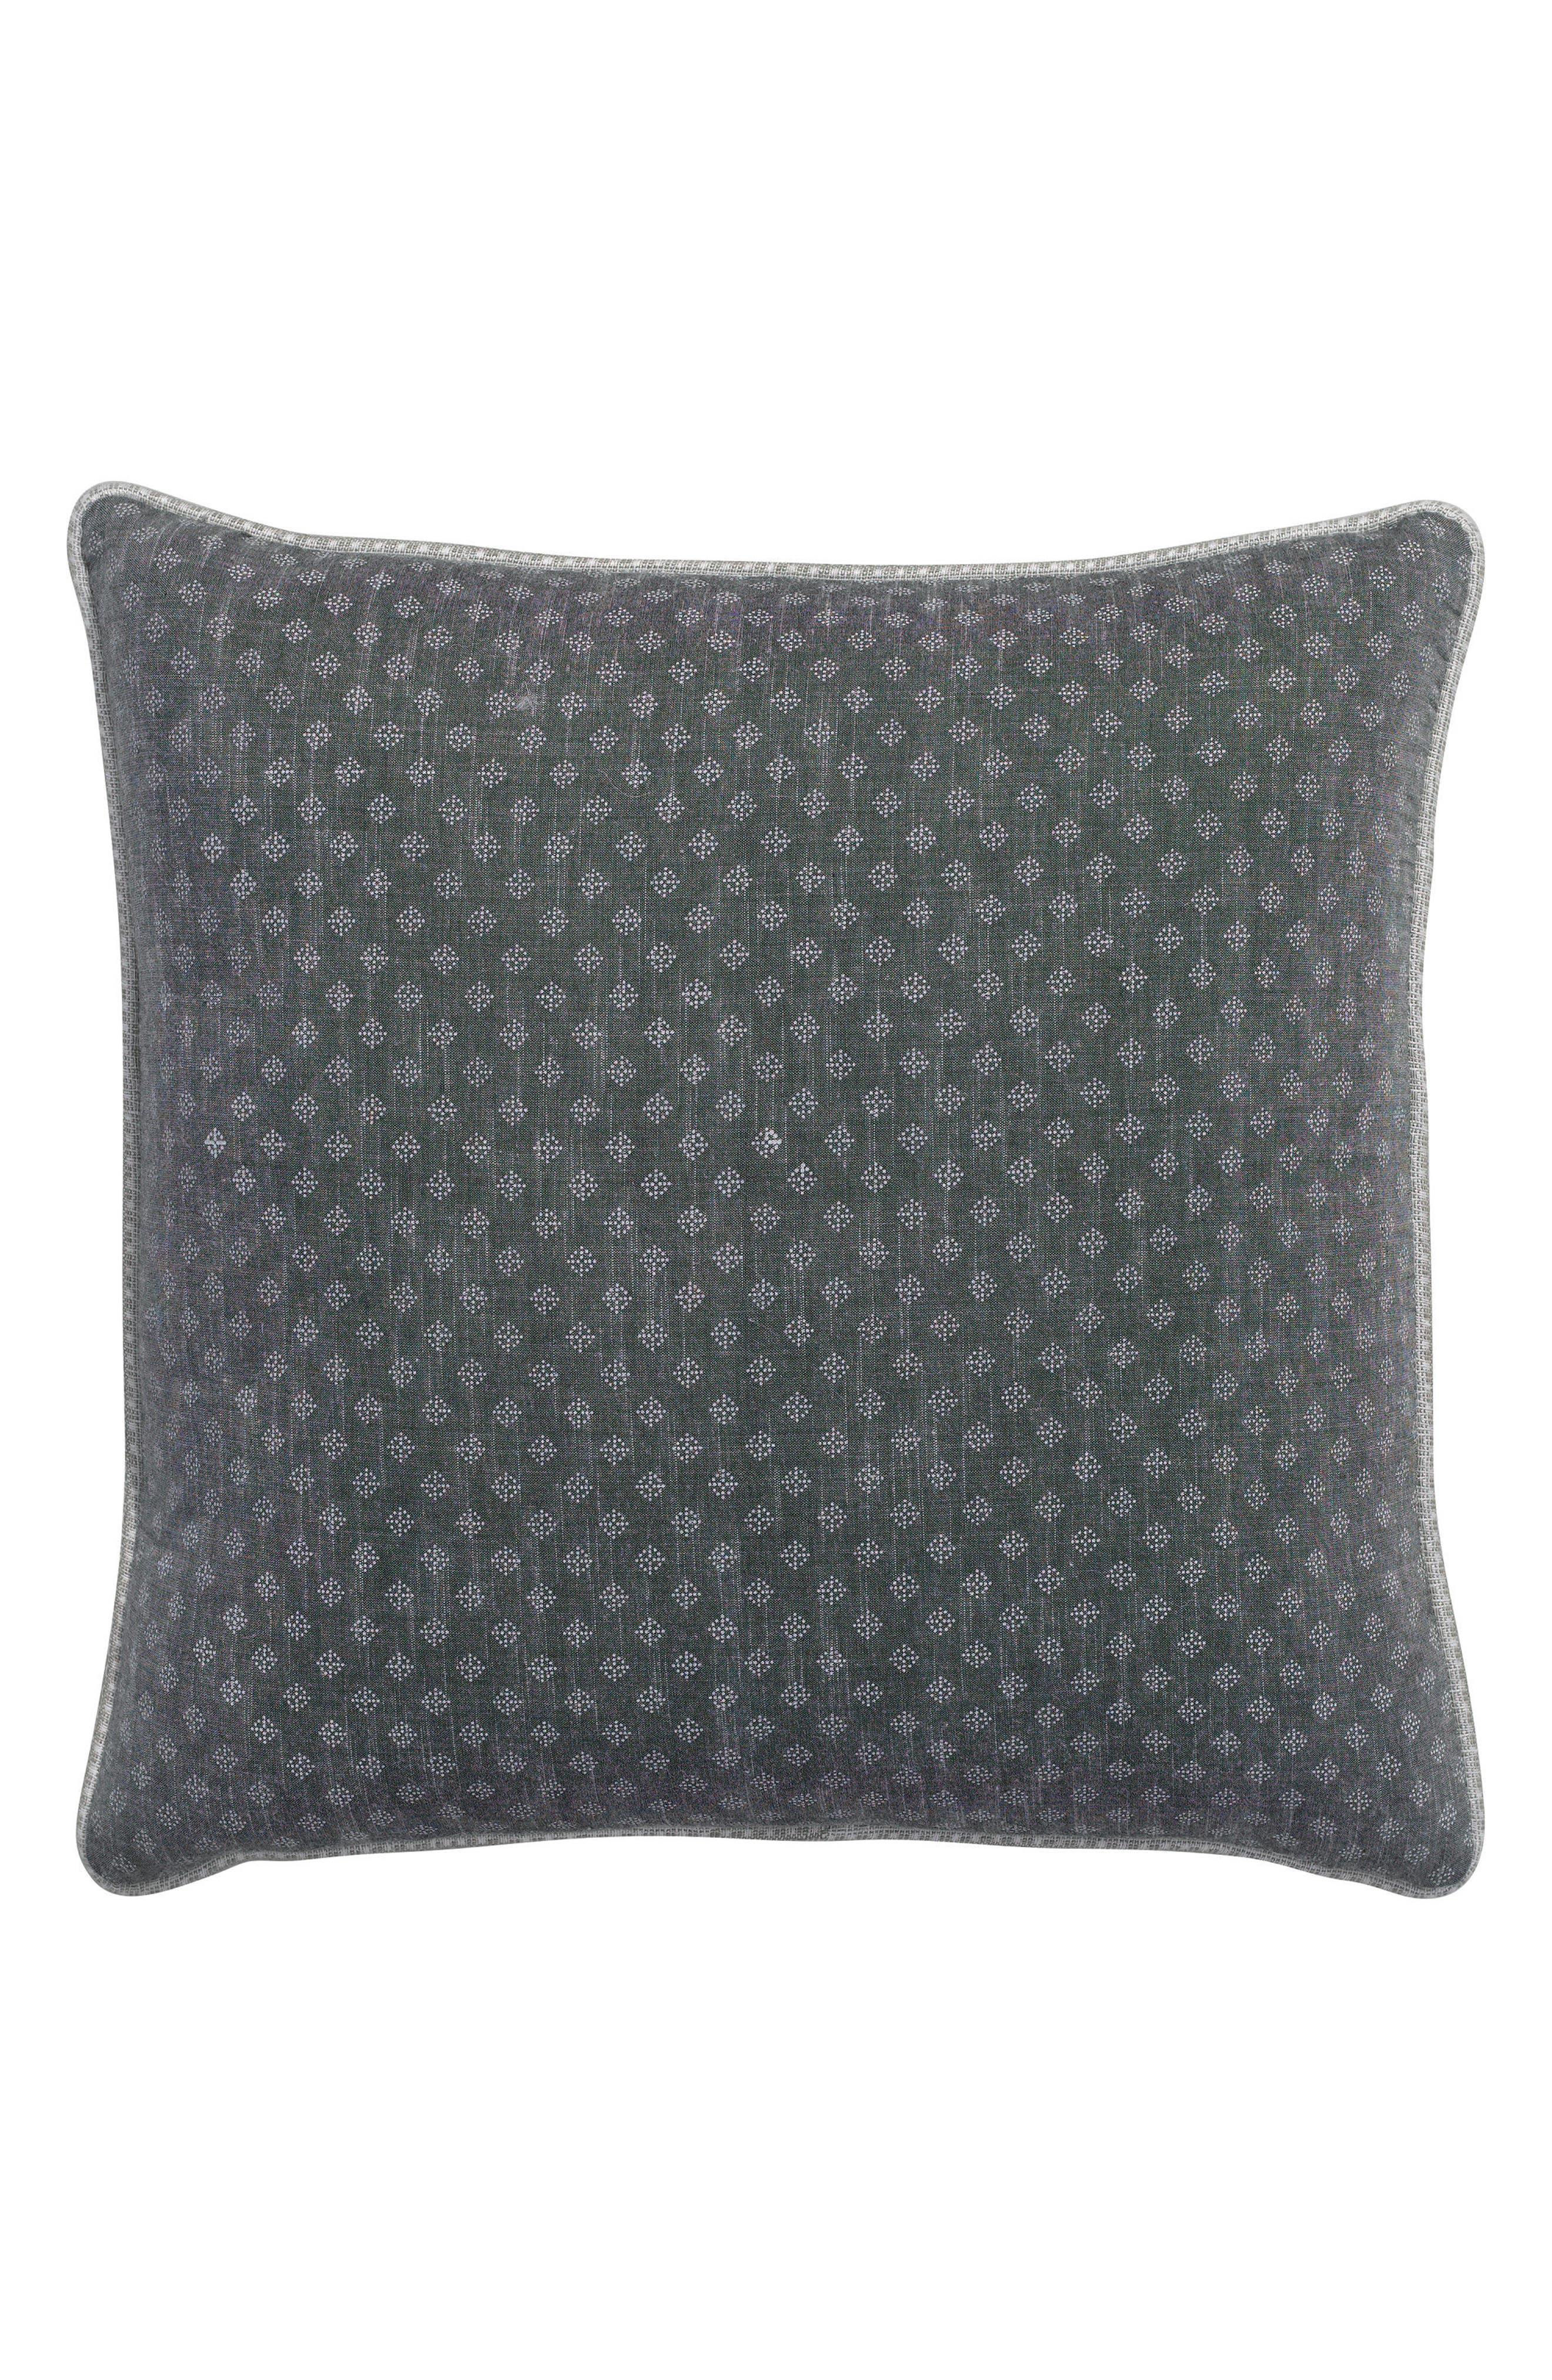 Park Ave Square Printed Dot Organic Cotton Accent Pillow,                             Main thumbnail 1, color,                             020